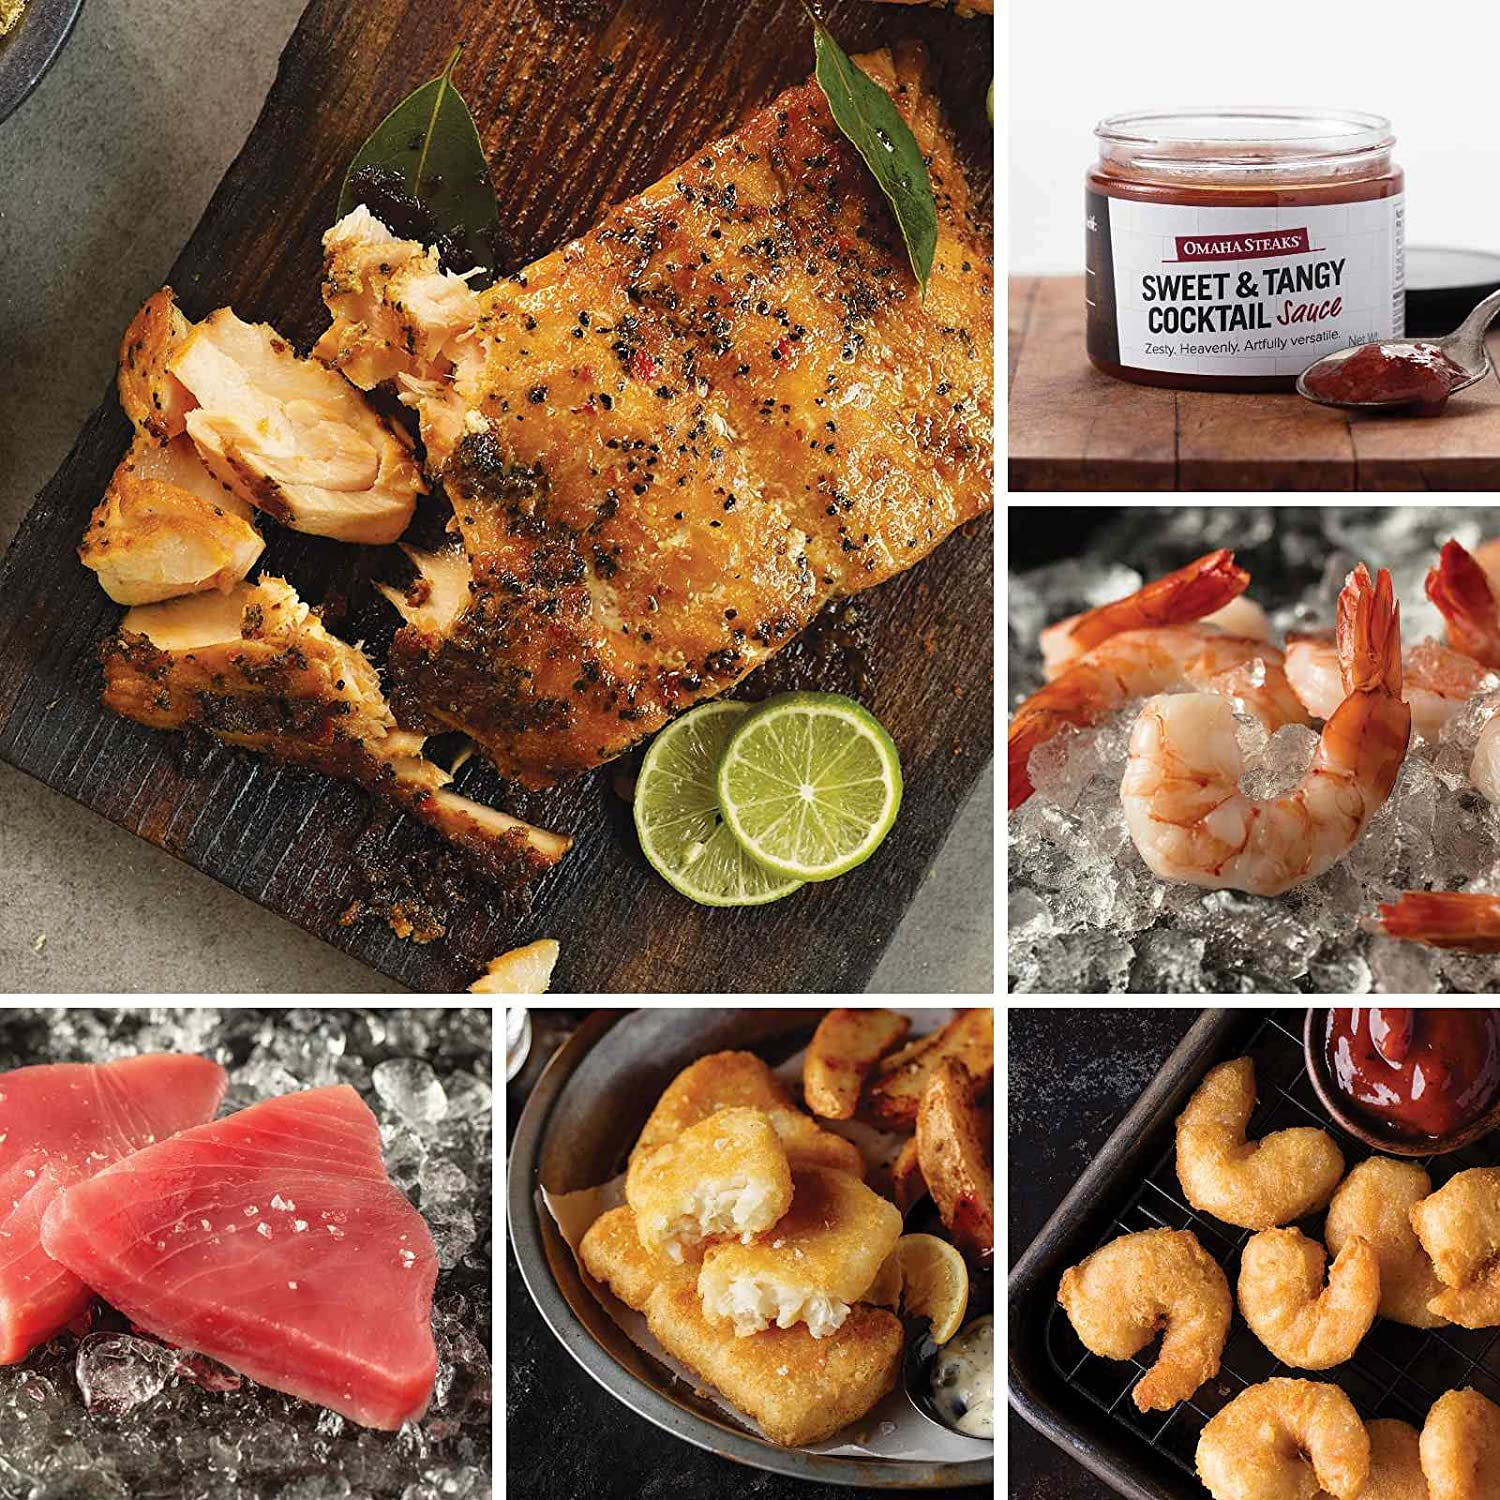 Seafood Favorites Assortment from Omaha Steaks (Pub-Style Cod, Marinated Salmon Fillets, Yellowfin Tuna Steaks, Redhook Amber Beer-Battered Shrimp, Jumbo Cooked Shrimp, and more)